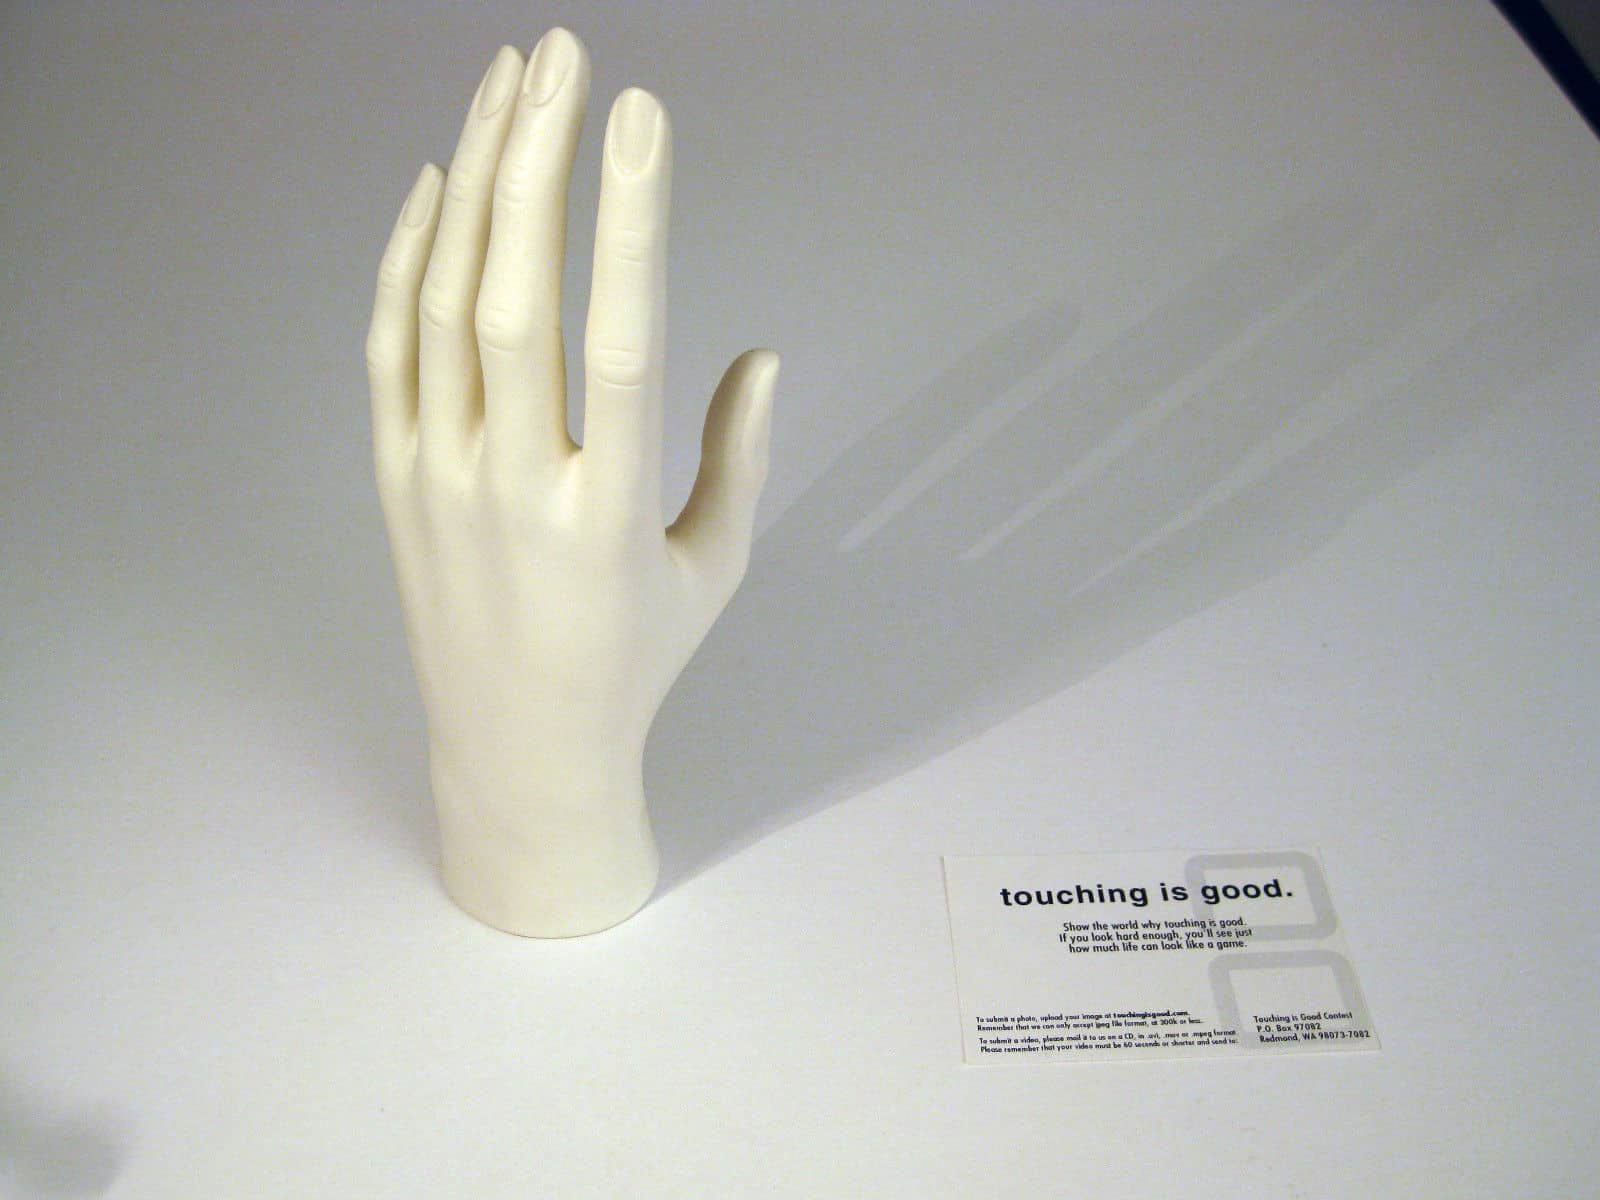 Nintendo DS Promotion Mannequin Hand Touching is Good